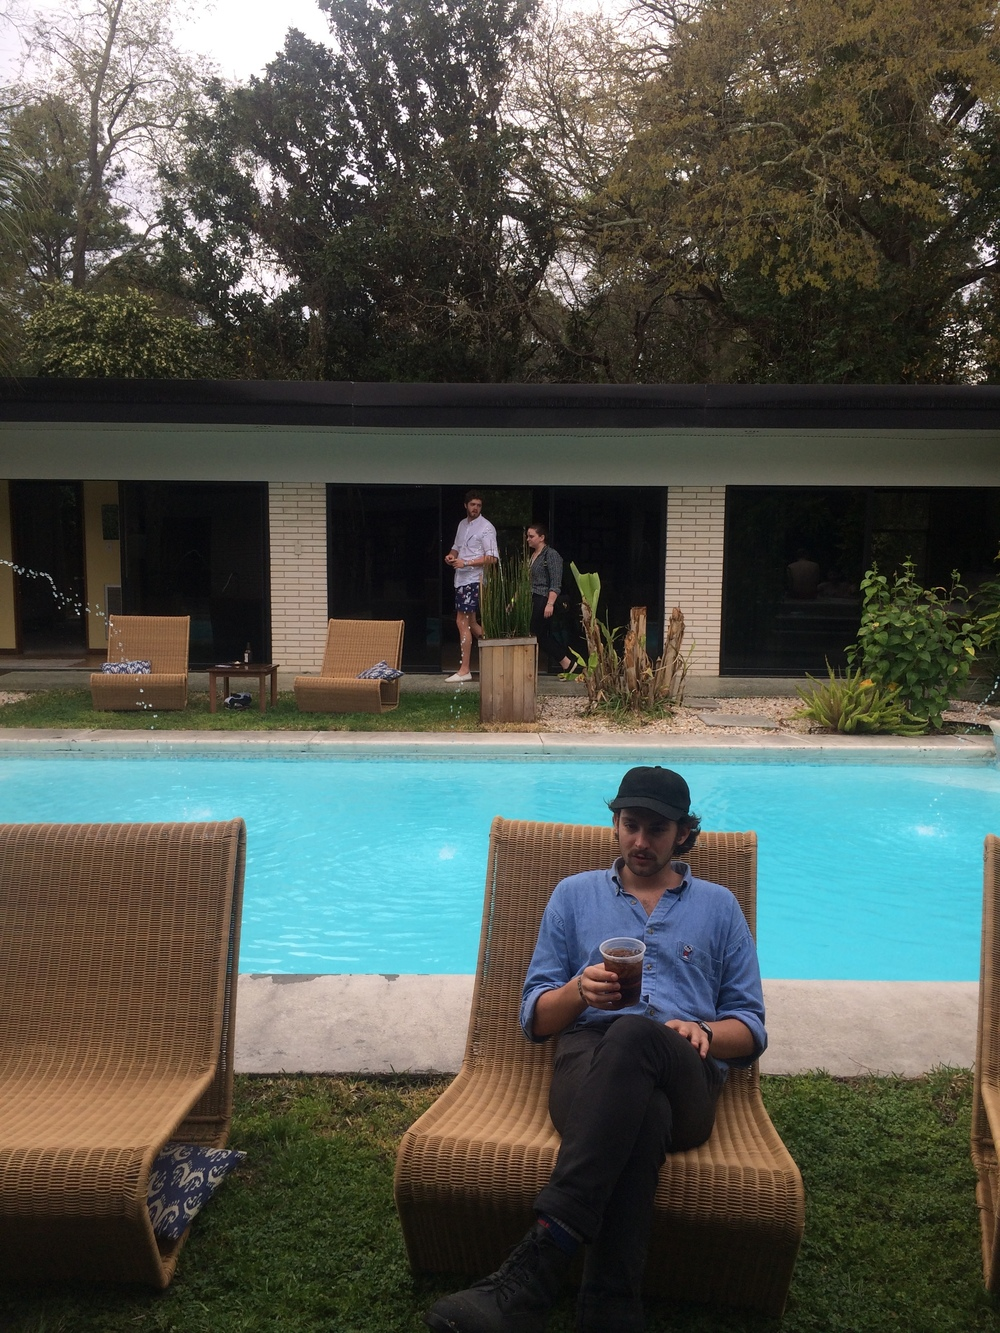 We had the pleasure of recovering from Stopover at Richard Lane's stunning mid-century house with our friends. Here's relaxing Adam.